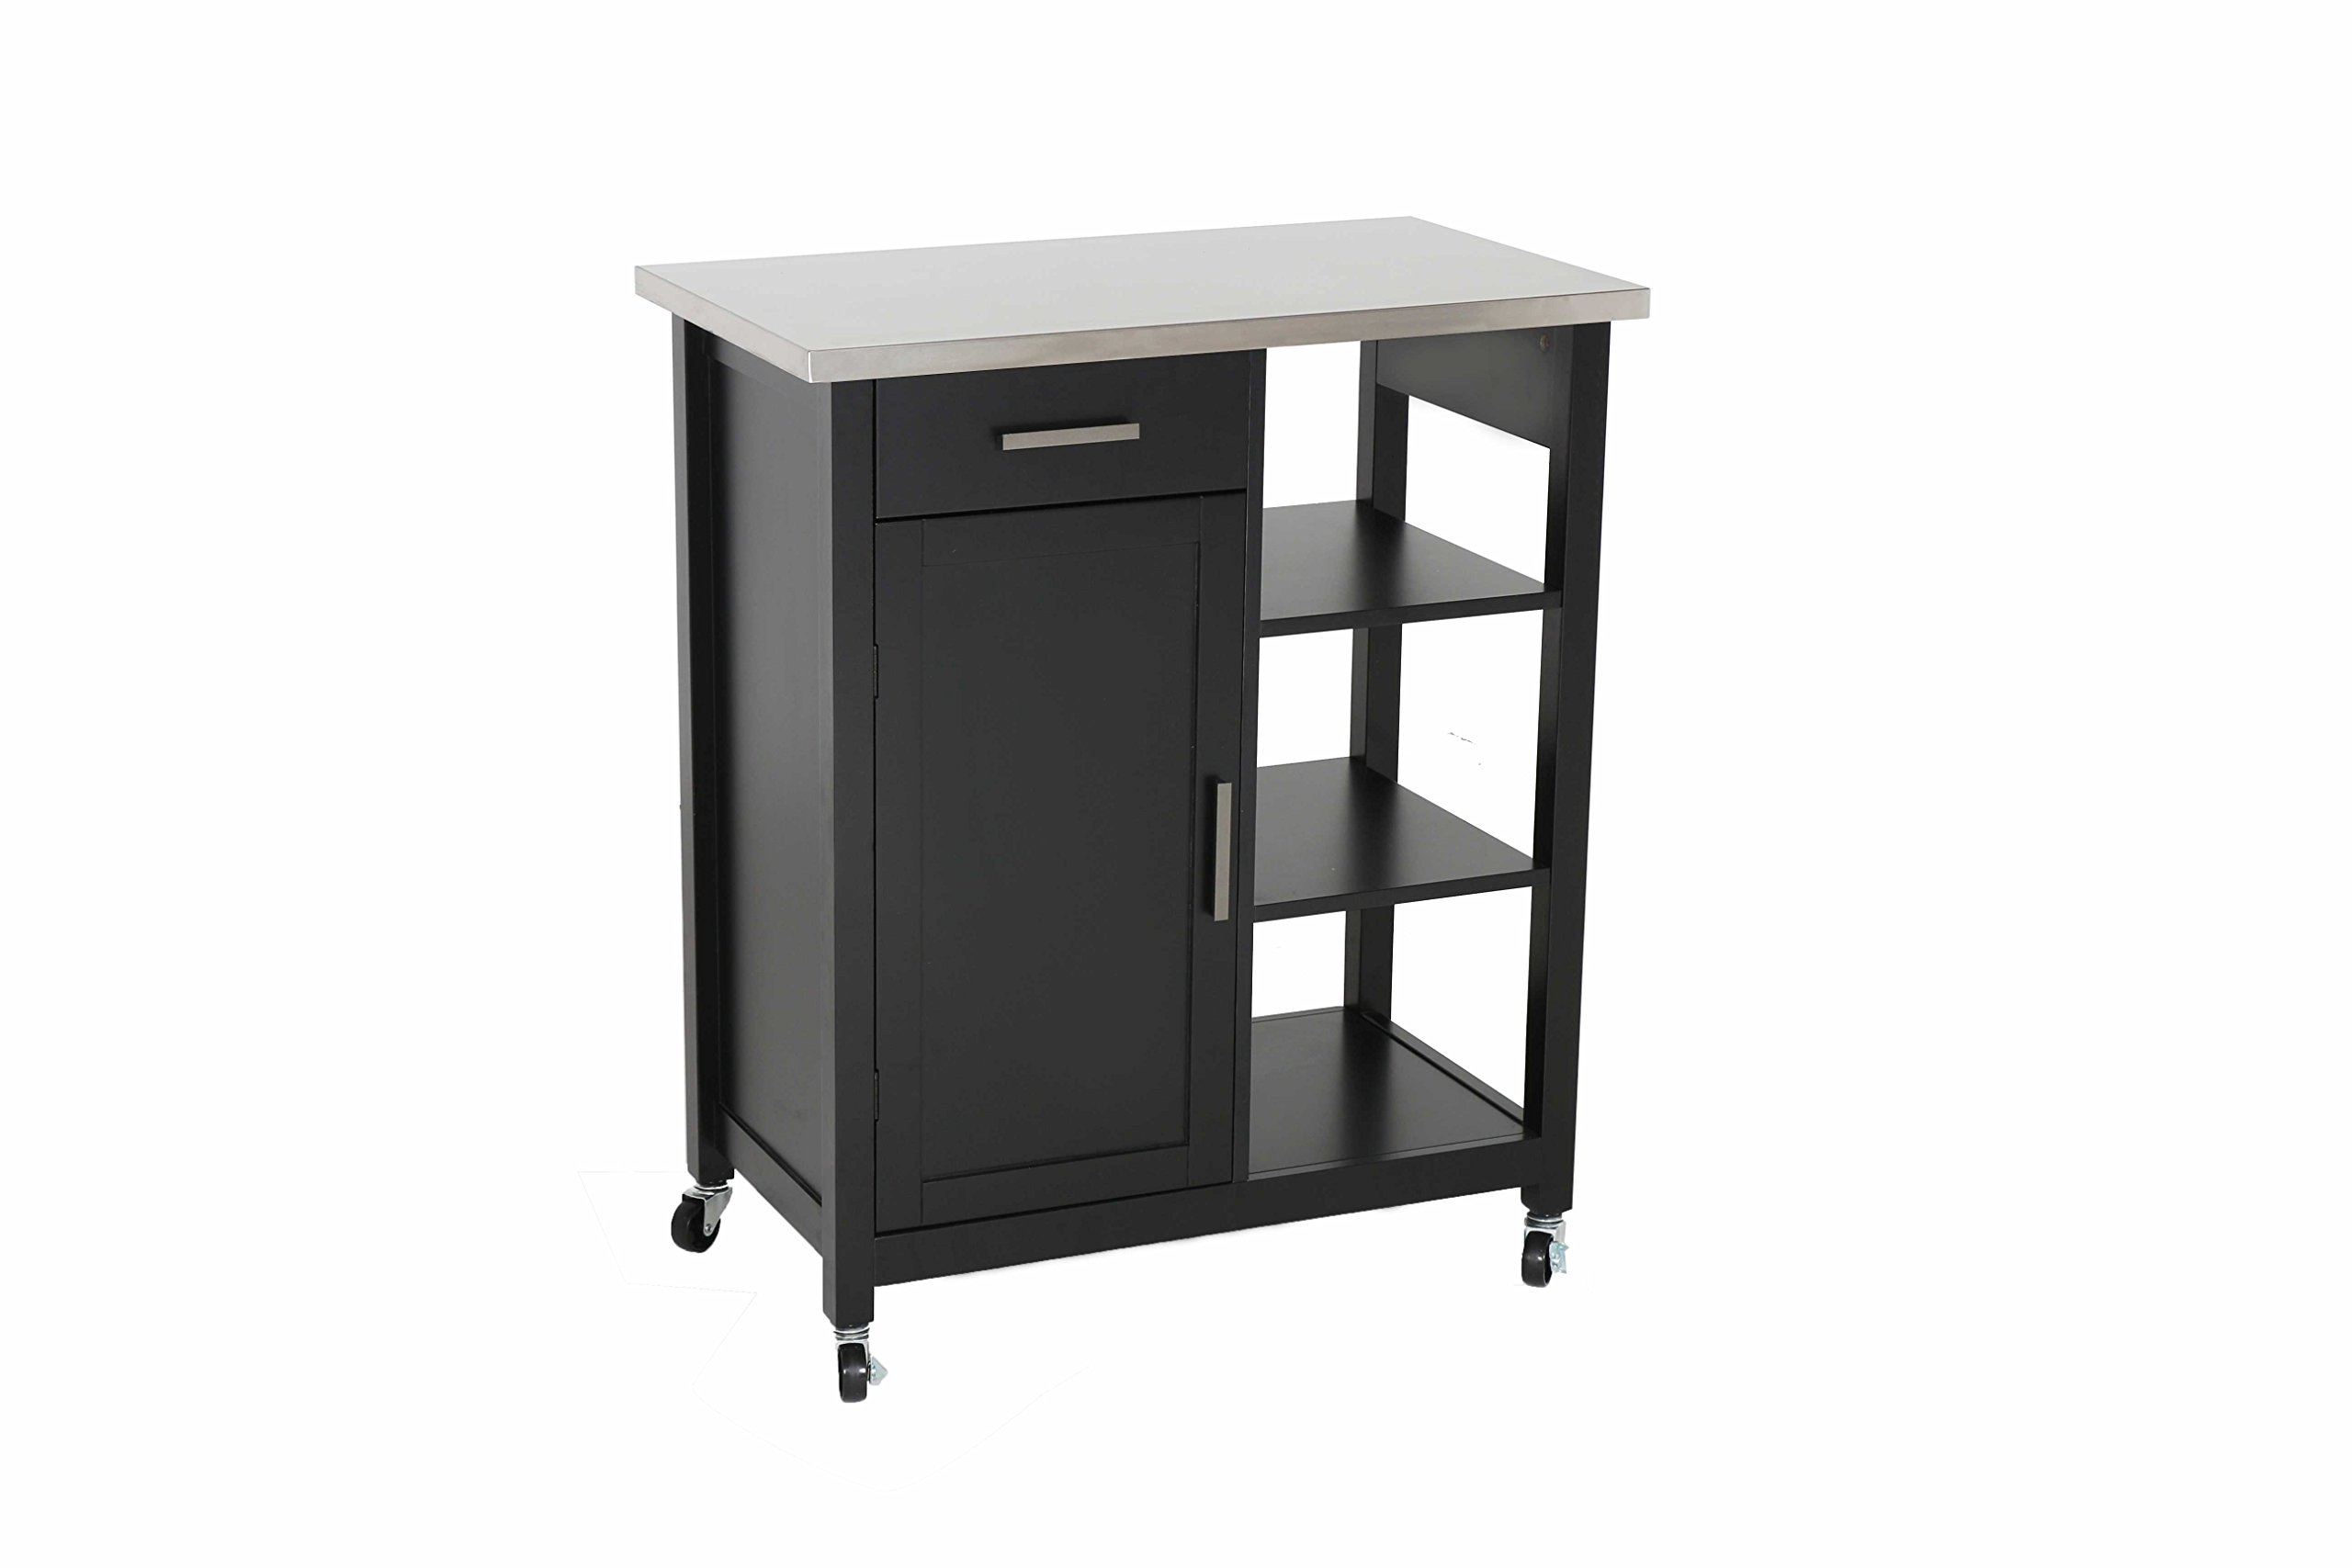 "Oliver and Smith - Nashville Collection - Mobile Kitchen Island Cart on Wheels - Black - Stainless Steel Top - 32"" W x 17"" L x 36"" H 102117-01blk"